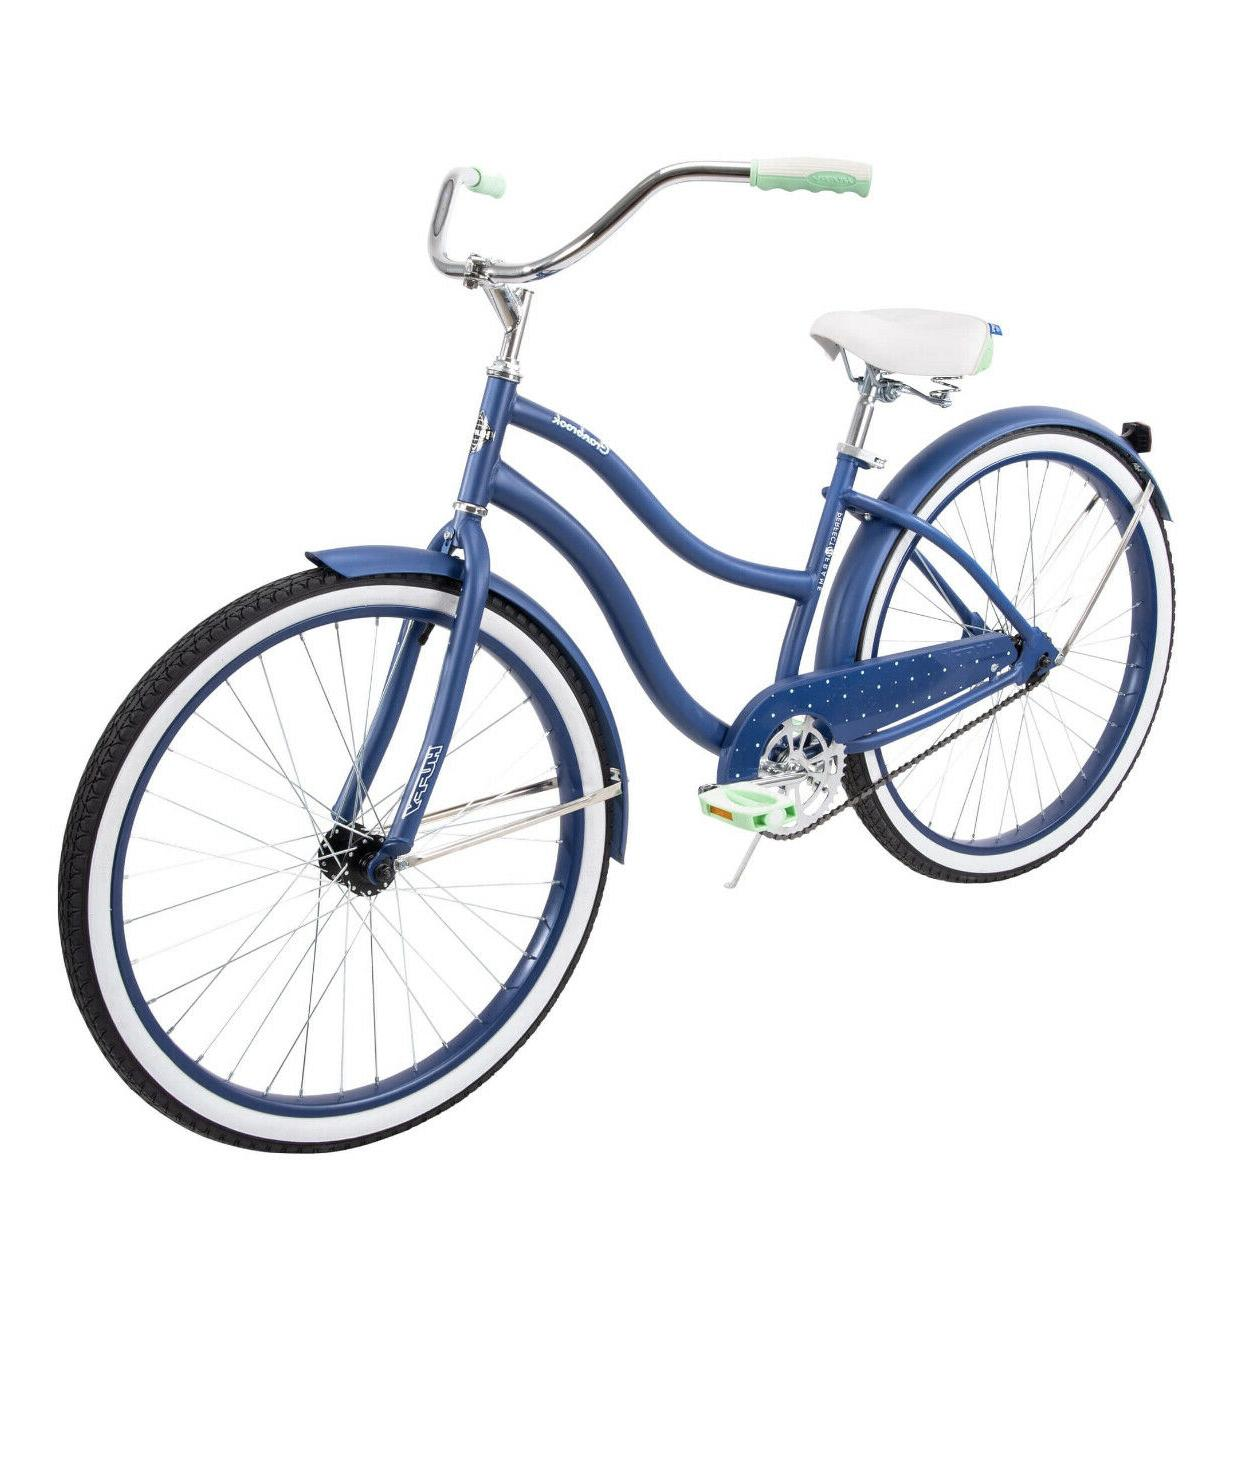 Huffy Cruiser Bike FAST SHIPPING AVAILABLE